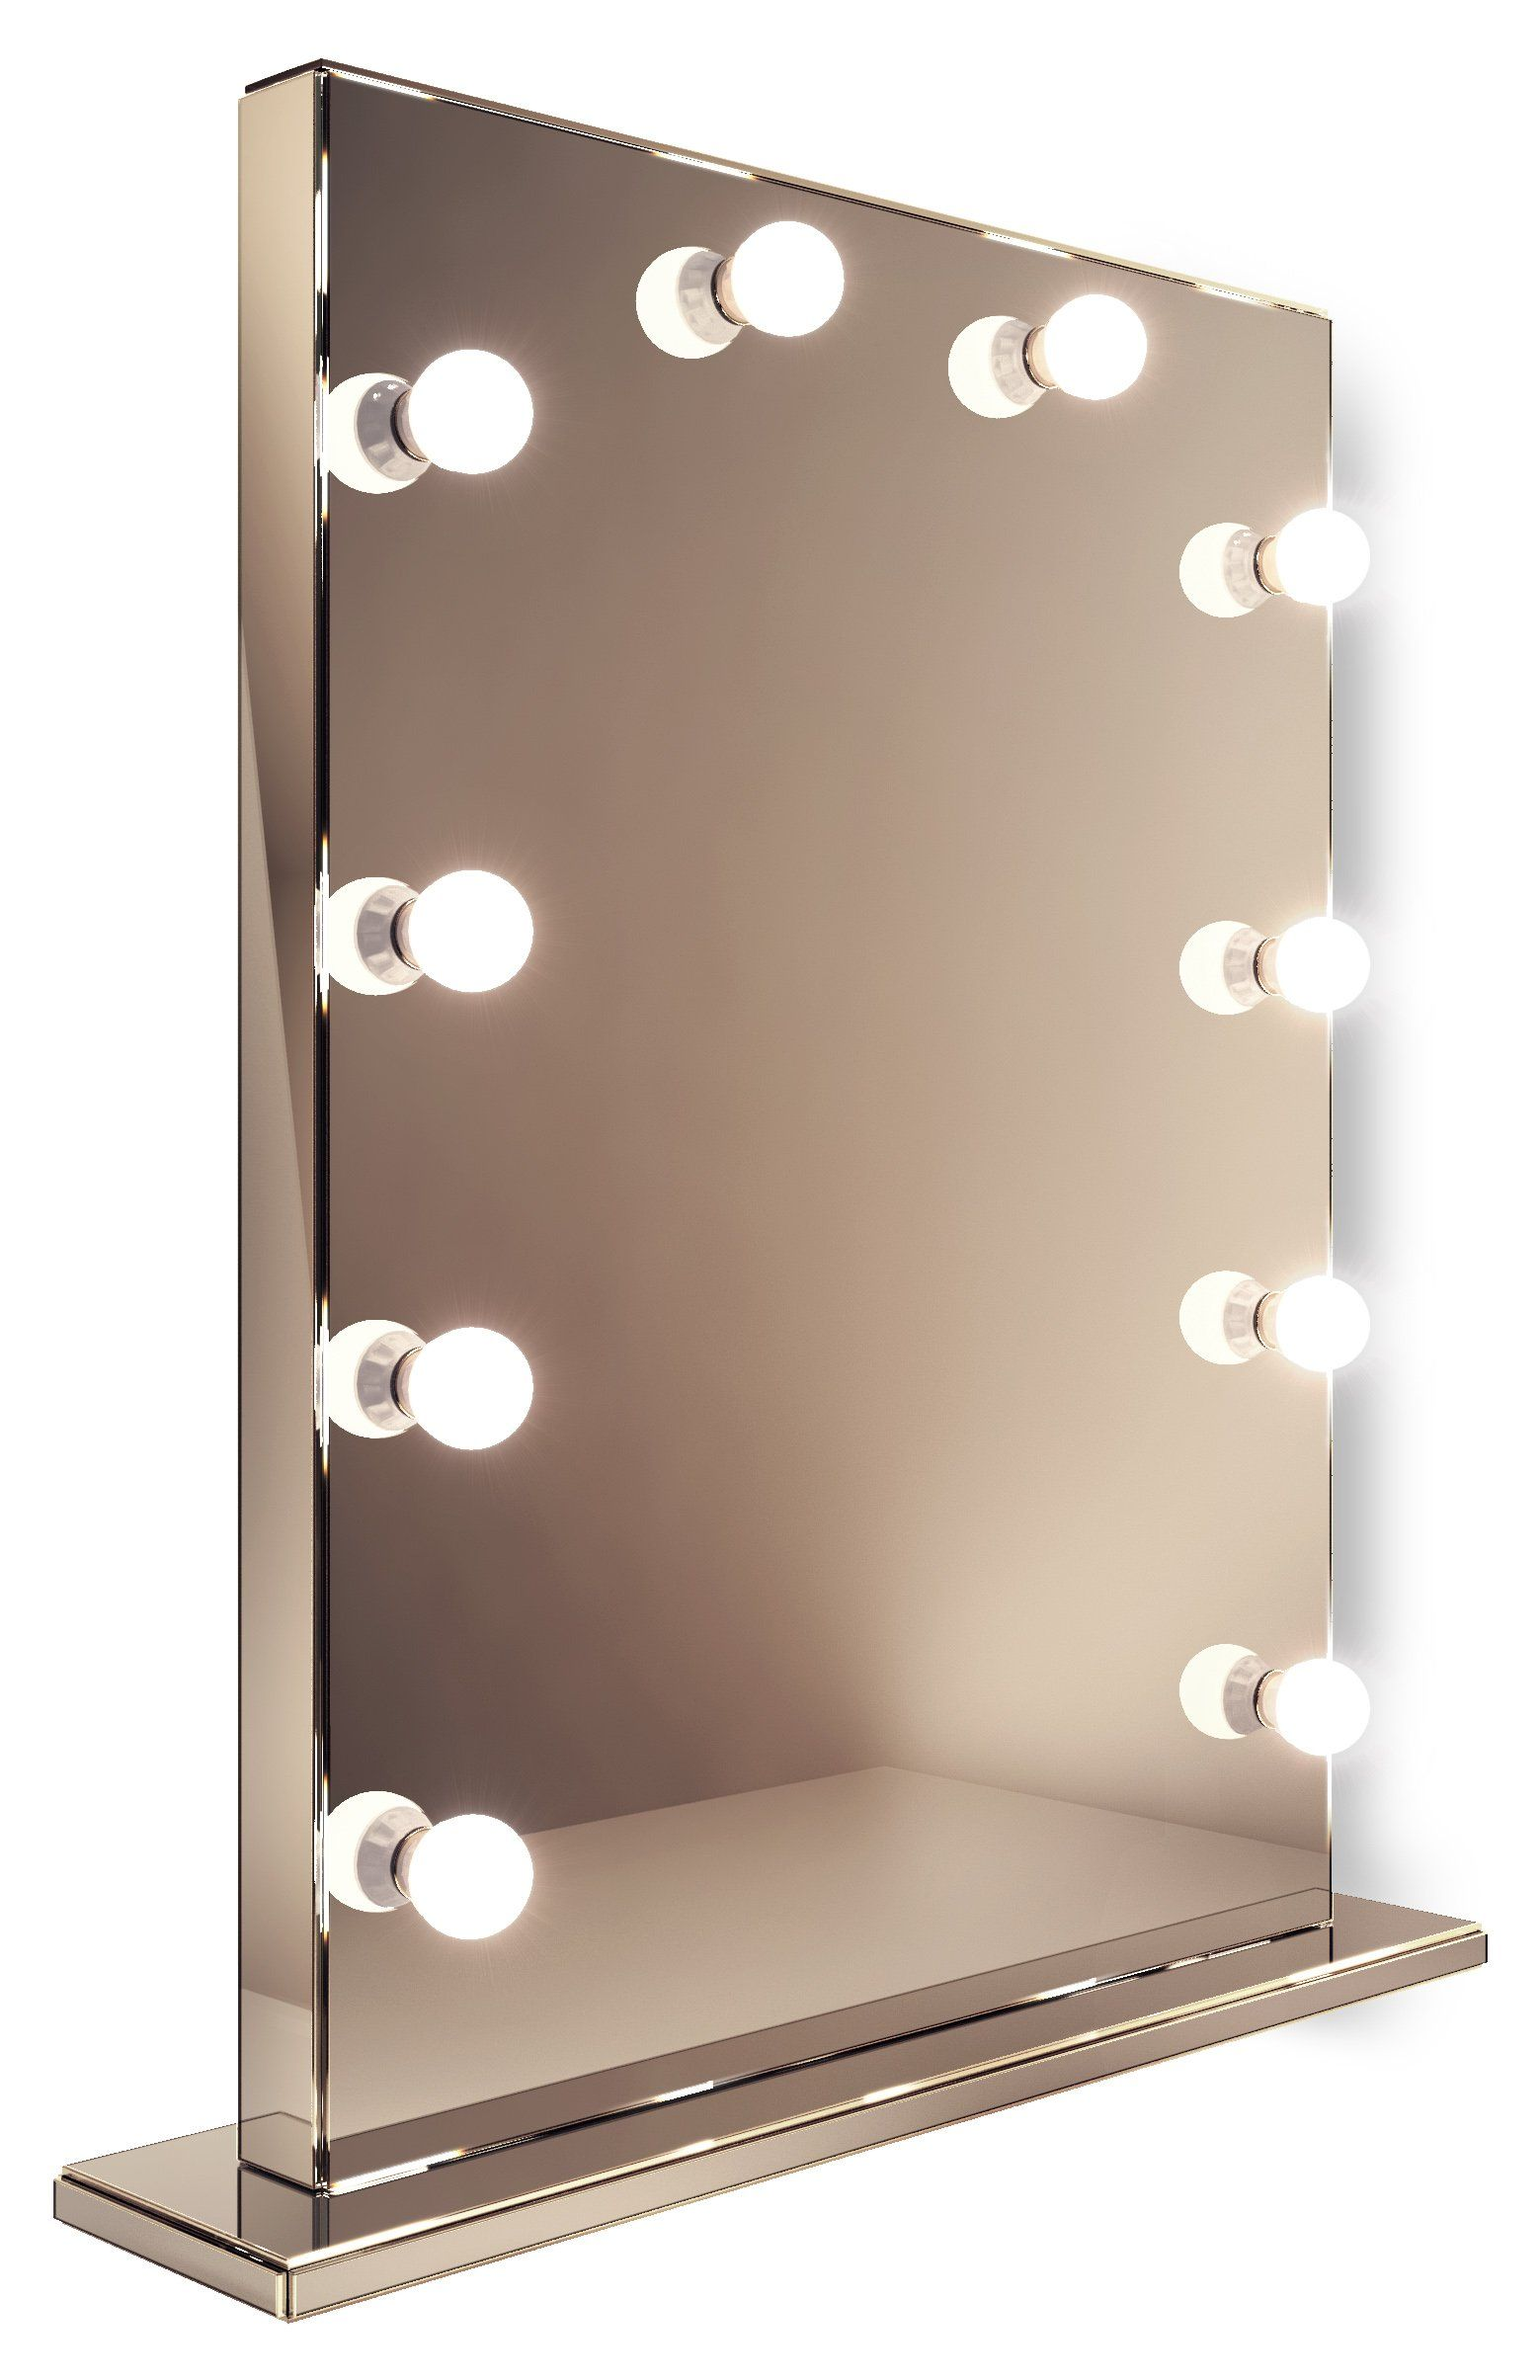 Mirror Finish Hollywood Makeup Dressing Room Mirror with